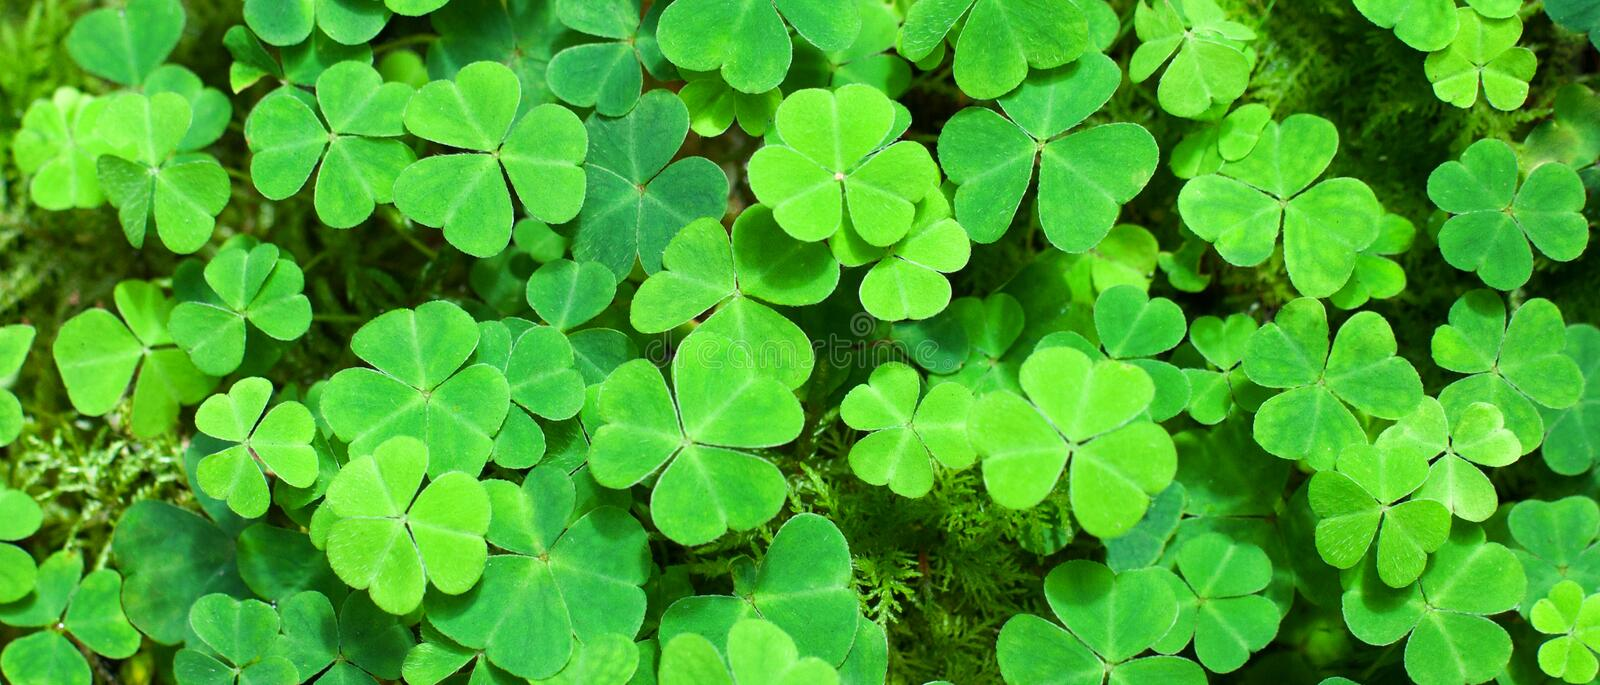 Green background with three-leaved shamrocks. royalty free stock images